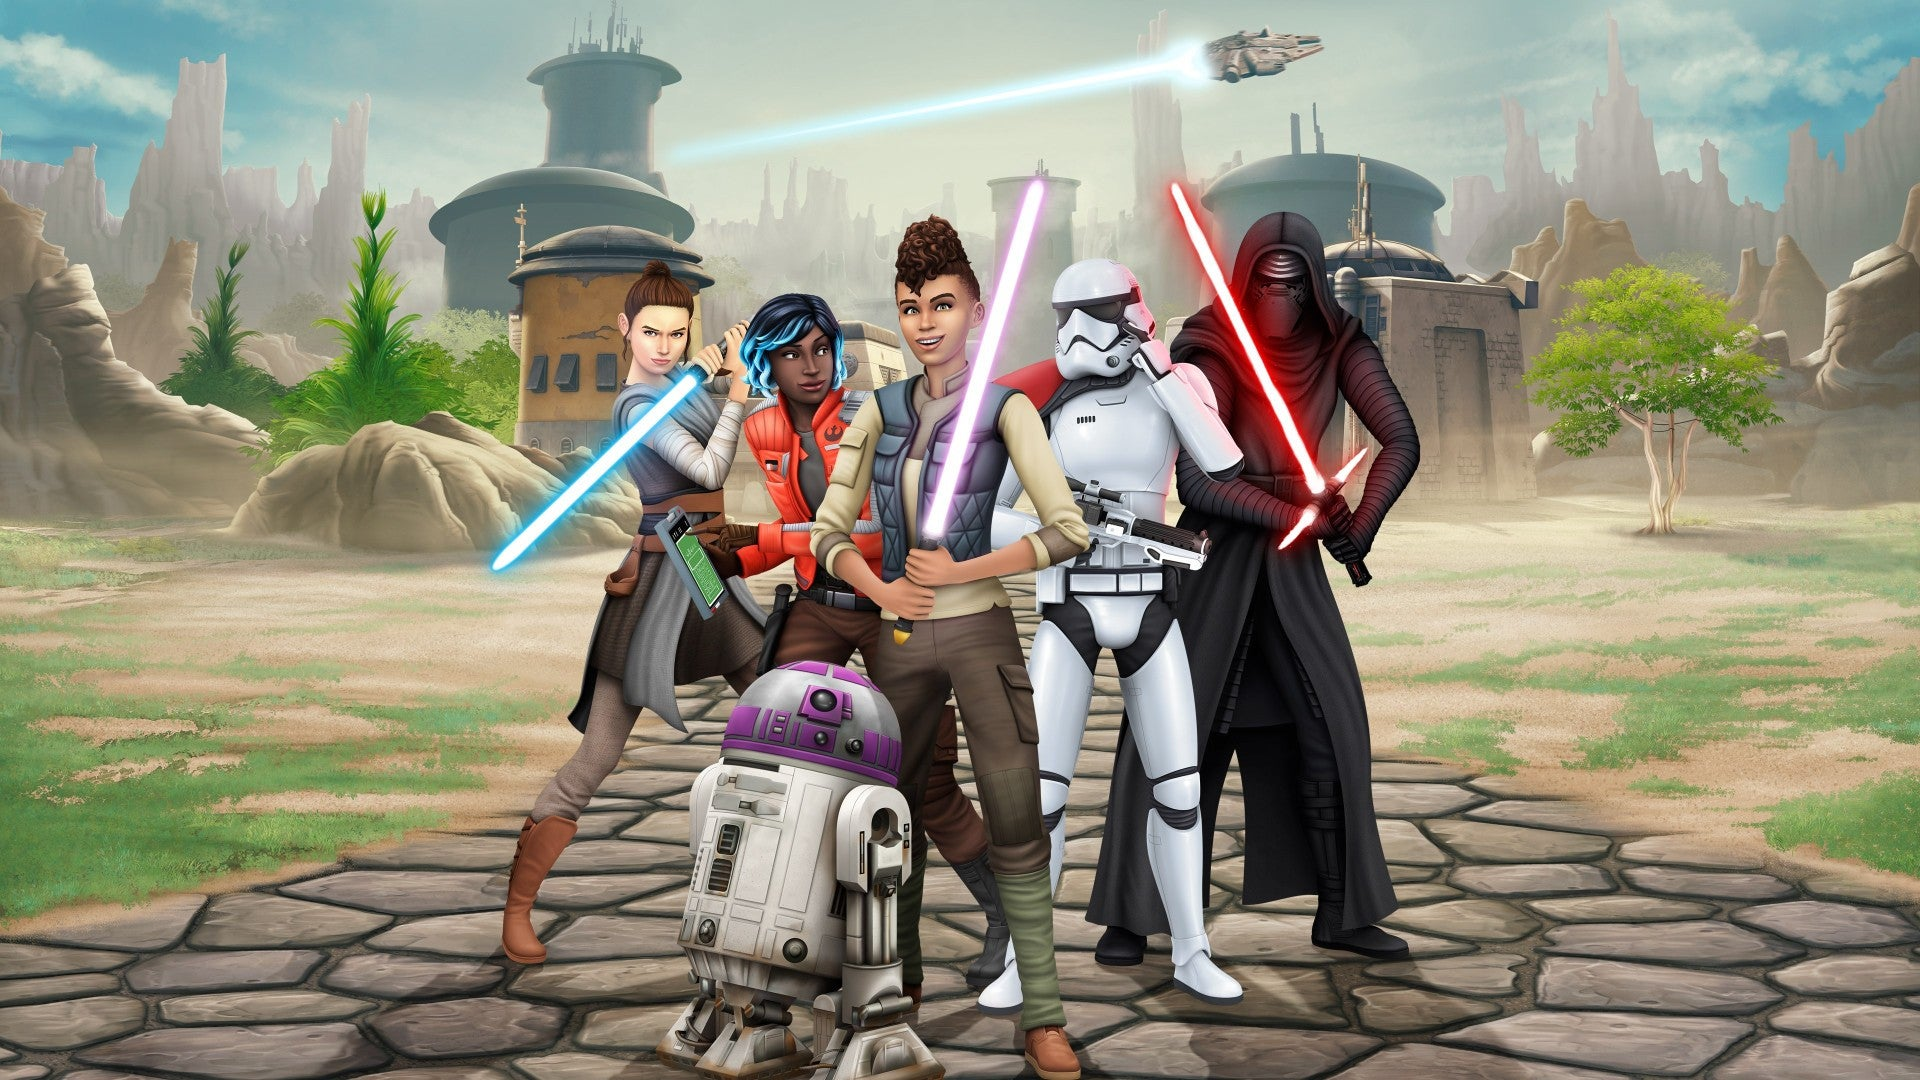 The Sims 4 Star Wars: Journey to Batuu Review | Trusted Reviews